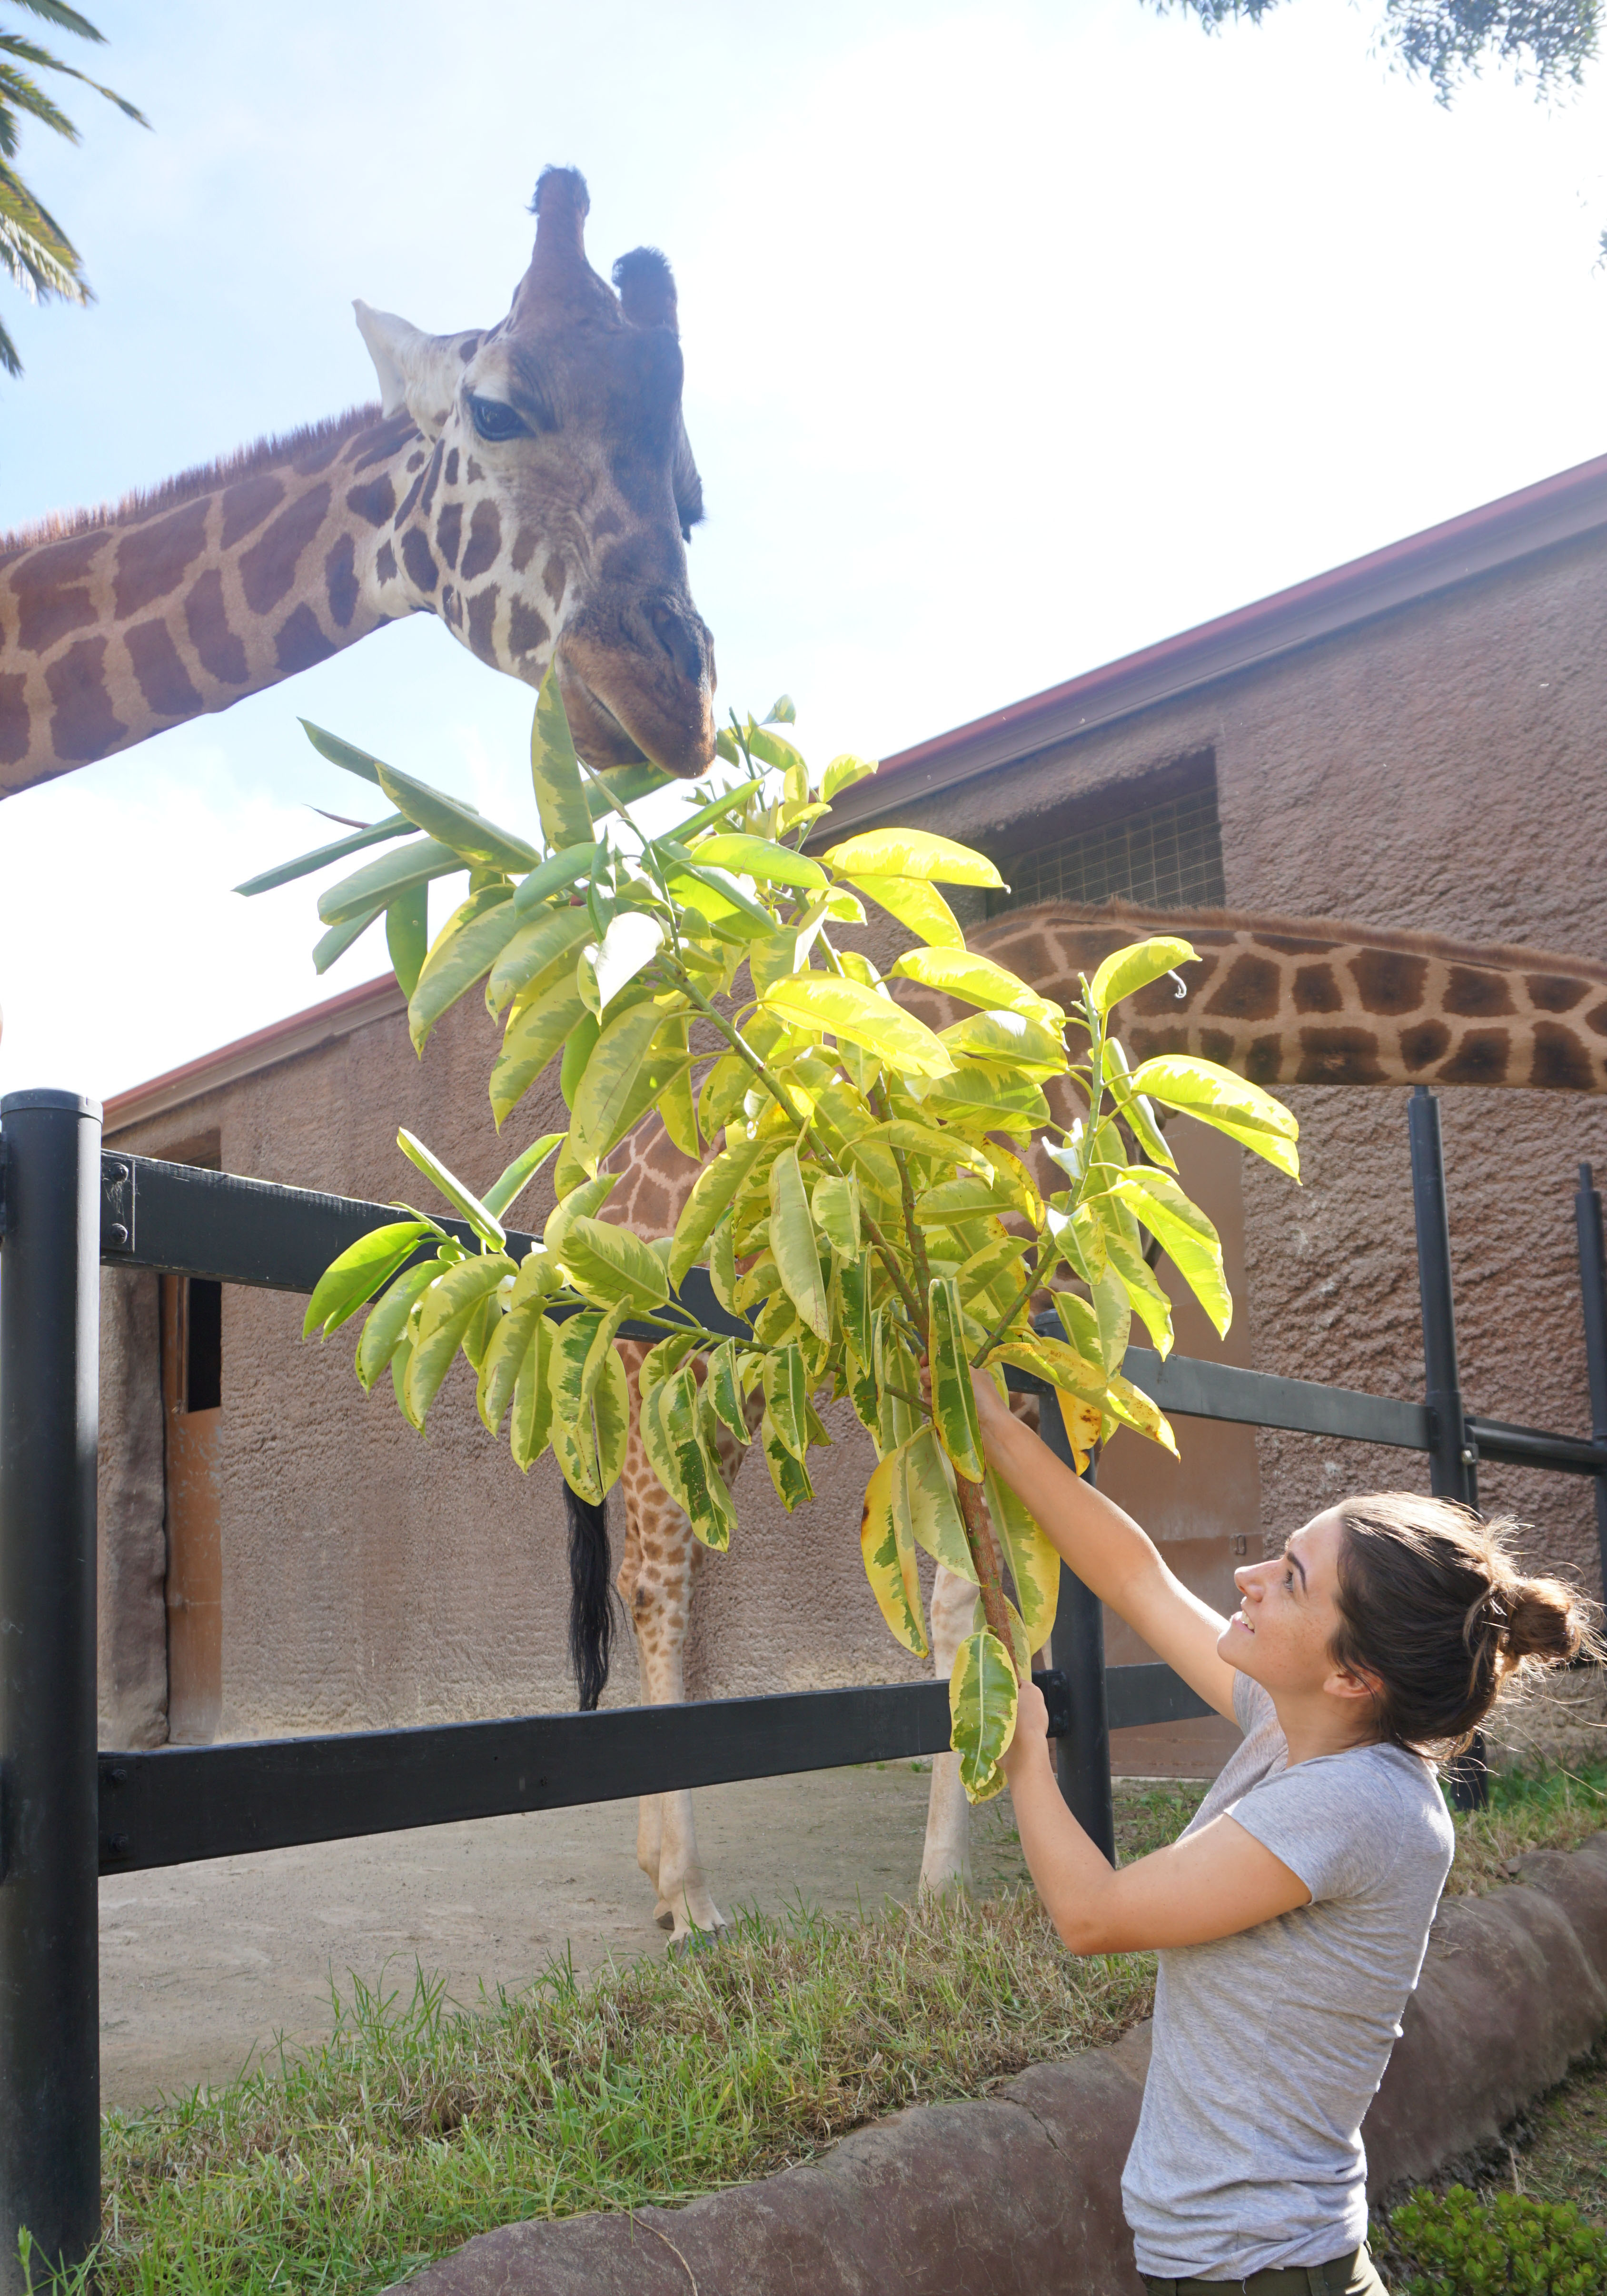 Feeding Giraffes during the zoo keeper for a day tour